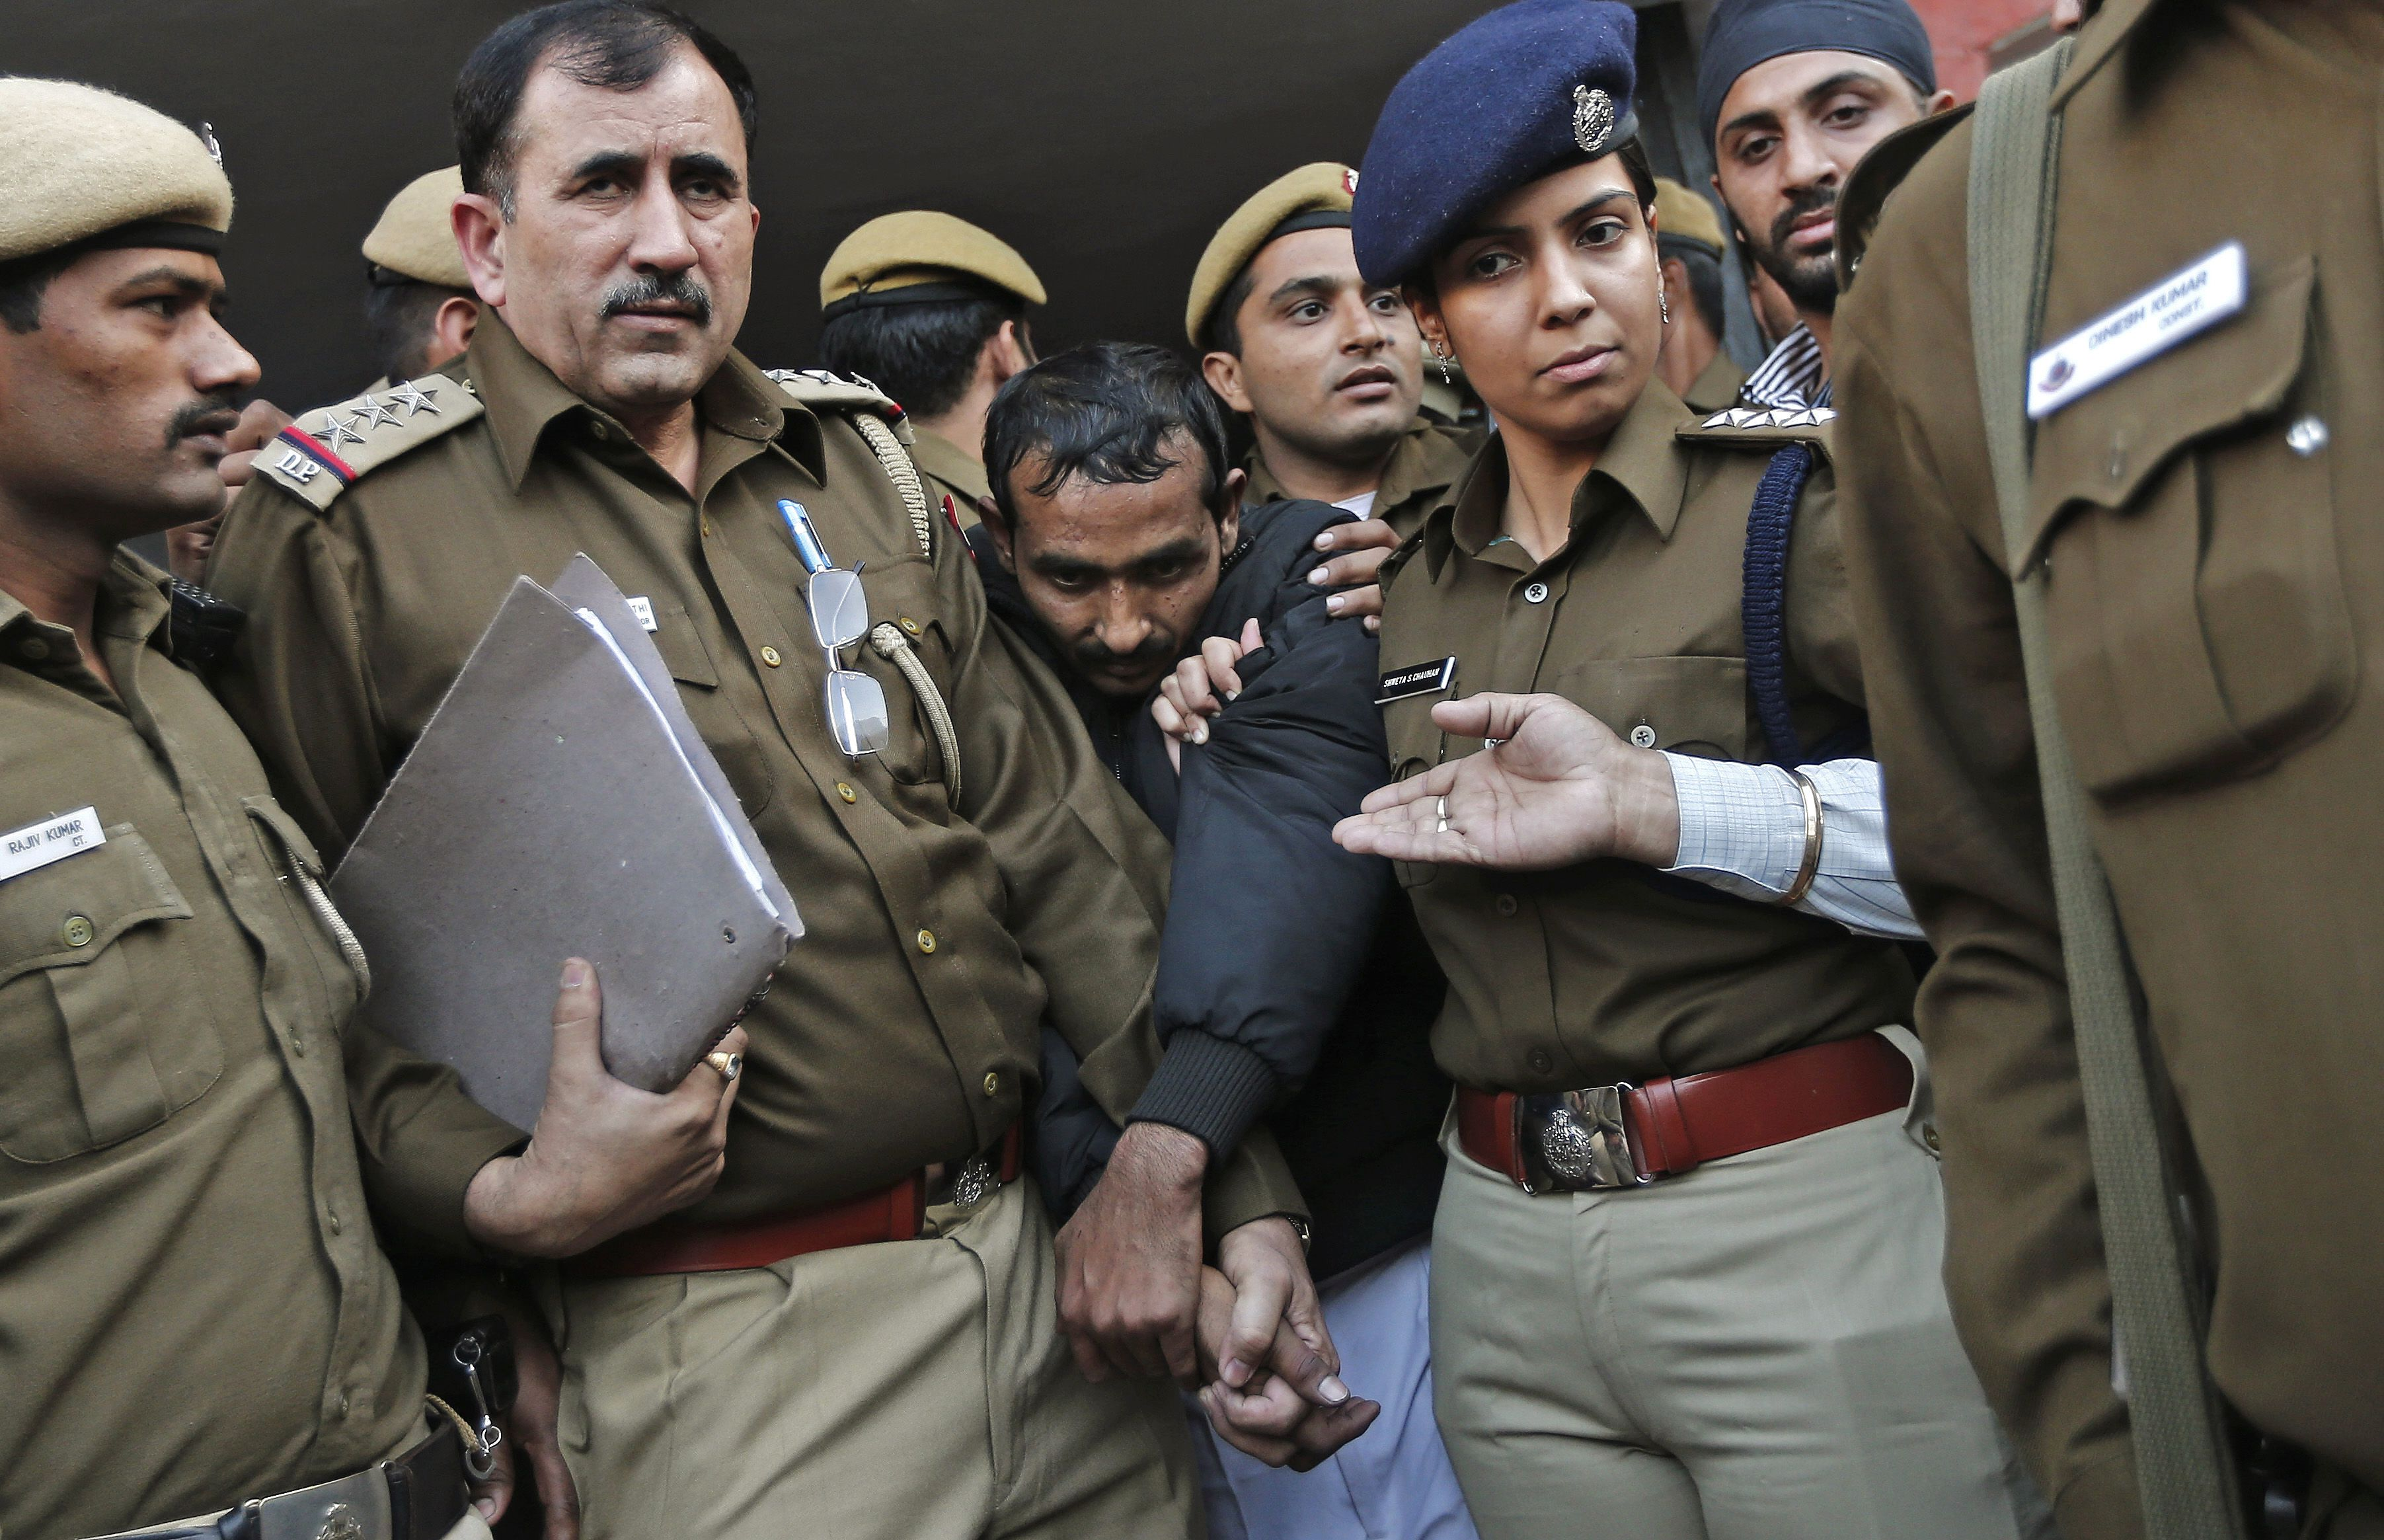 Policemen escort driver Shiv Kumar Yadav (C in black jacket) who is accused of a rape outside a court in New Delhi December 8, 2014. U.S. online ride-hailing service Uber has been banned from operating in the Indian capital after a female passenger accused one of its drivers of rape, a case that has reignited a debate about the safety of women in the South Asian nation.  REUTERS/Adnan Abidi (INDIA - Tags: CRIME LAW BUSINESS TRANSPORT TPX IMAGES OF THE DAY) - RTR4H45S